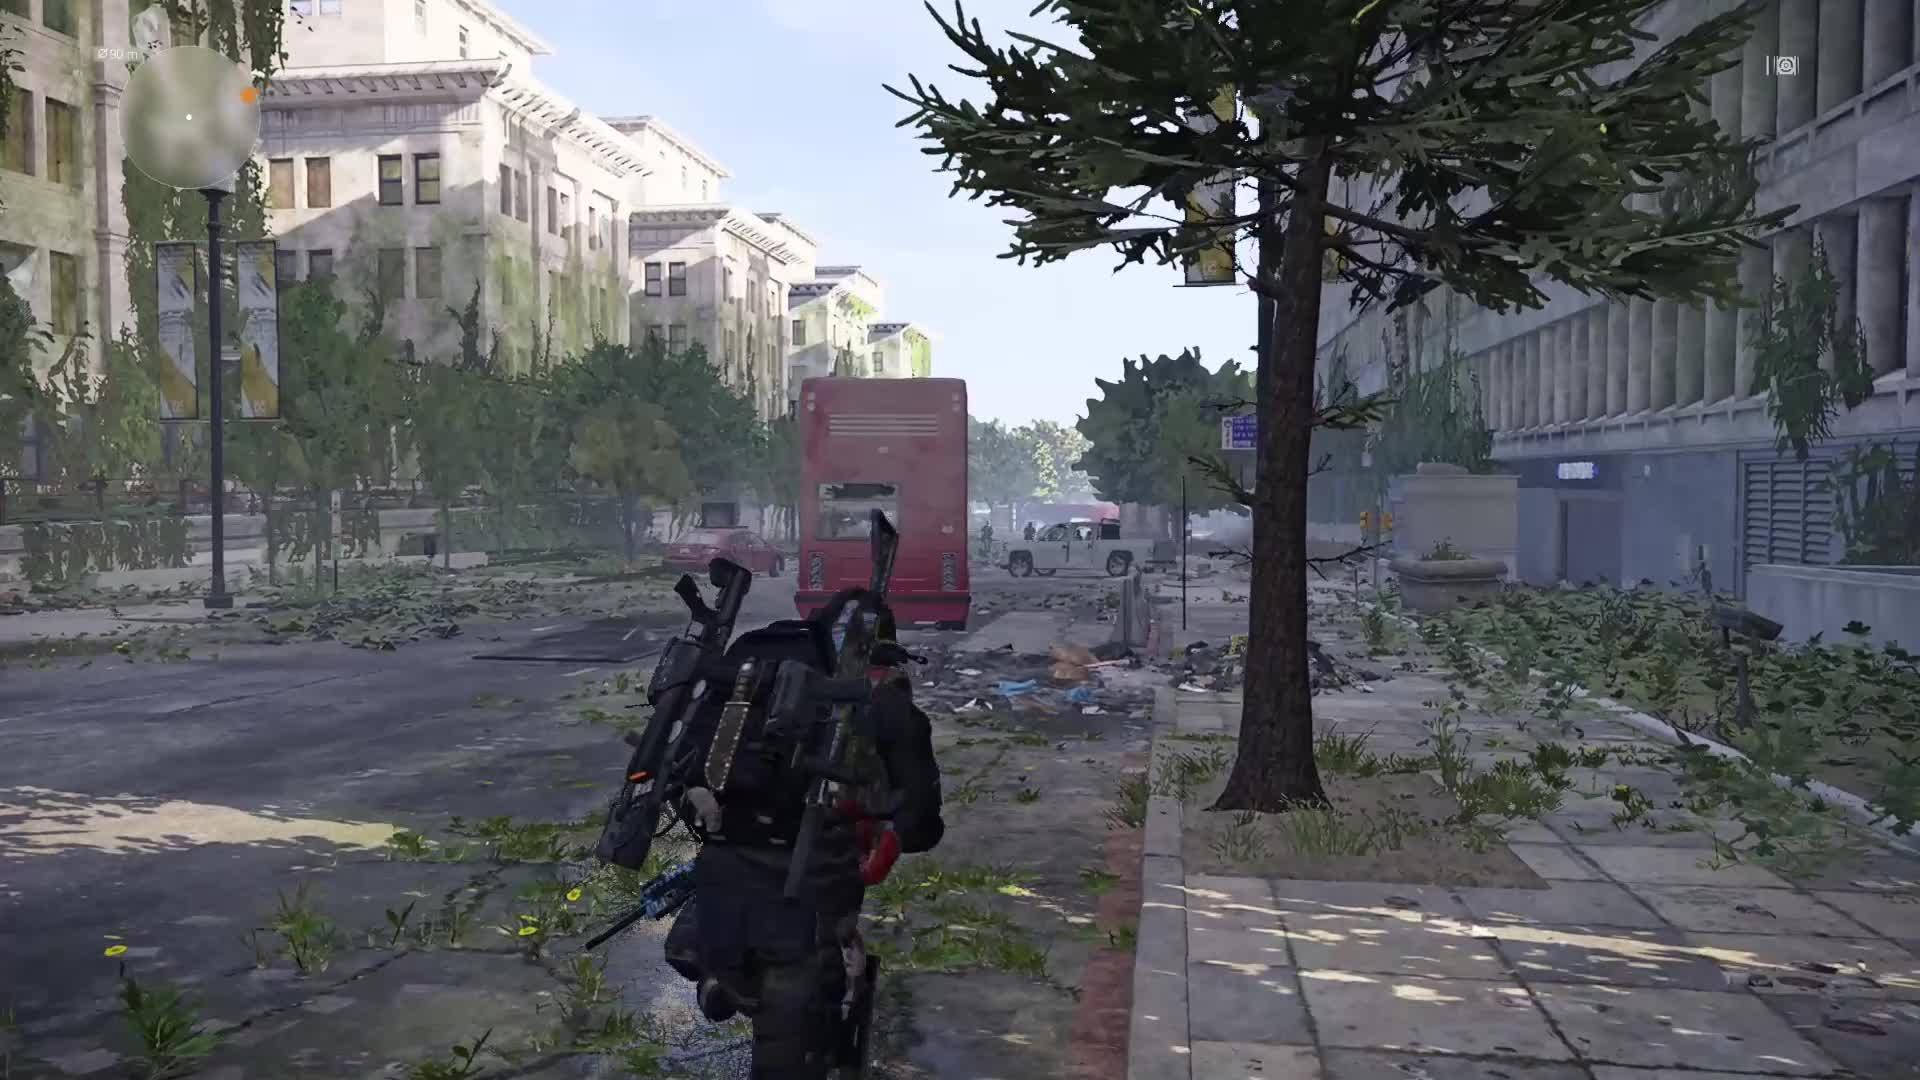 TomClancysTheDivision2, gamer dvr, jareds1515, xbox, xbox one, tom clacy GIFs